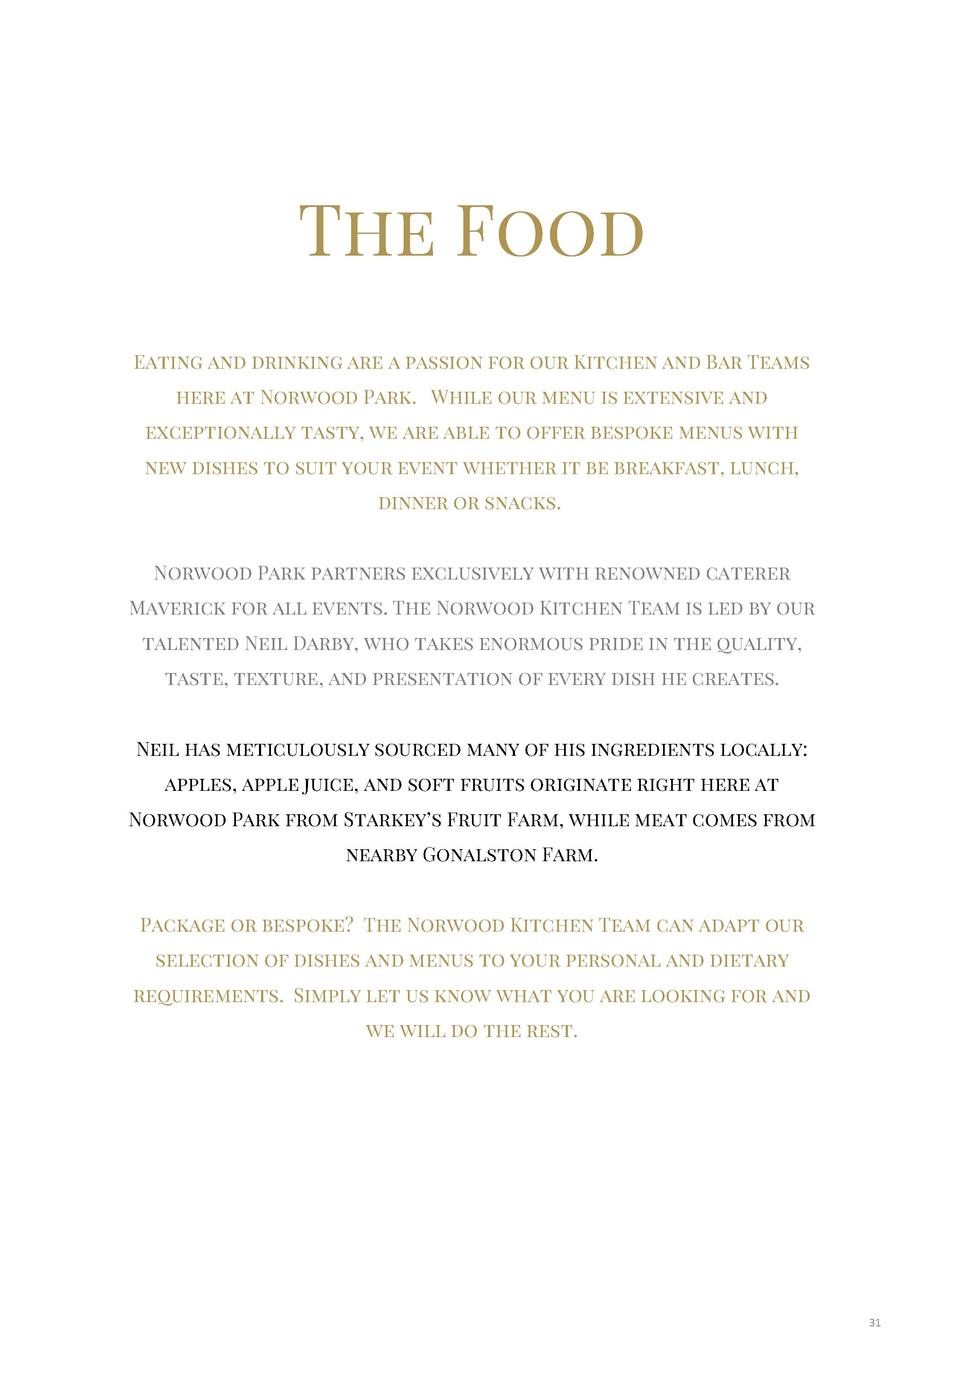 The Food Eating and drinking are a passion for our Kitchen and Bar Teams here at Norwood Park. While our menu is extensive...